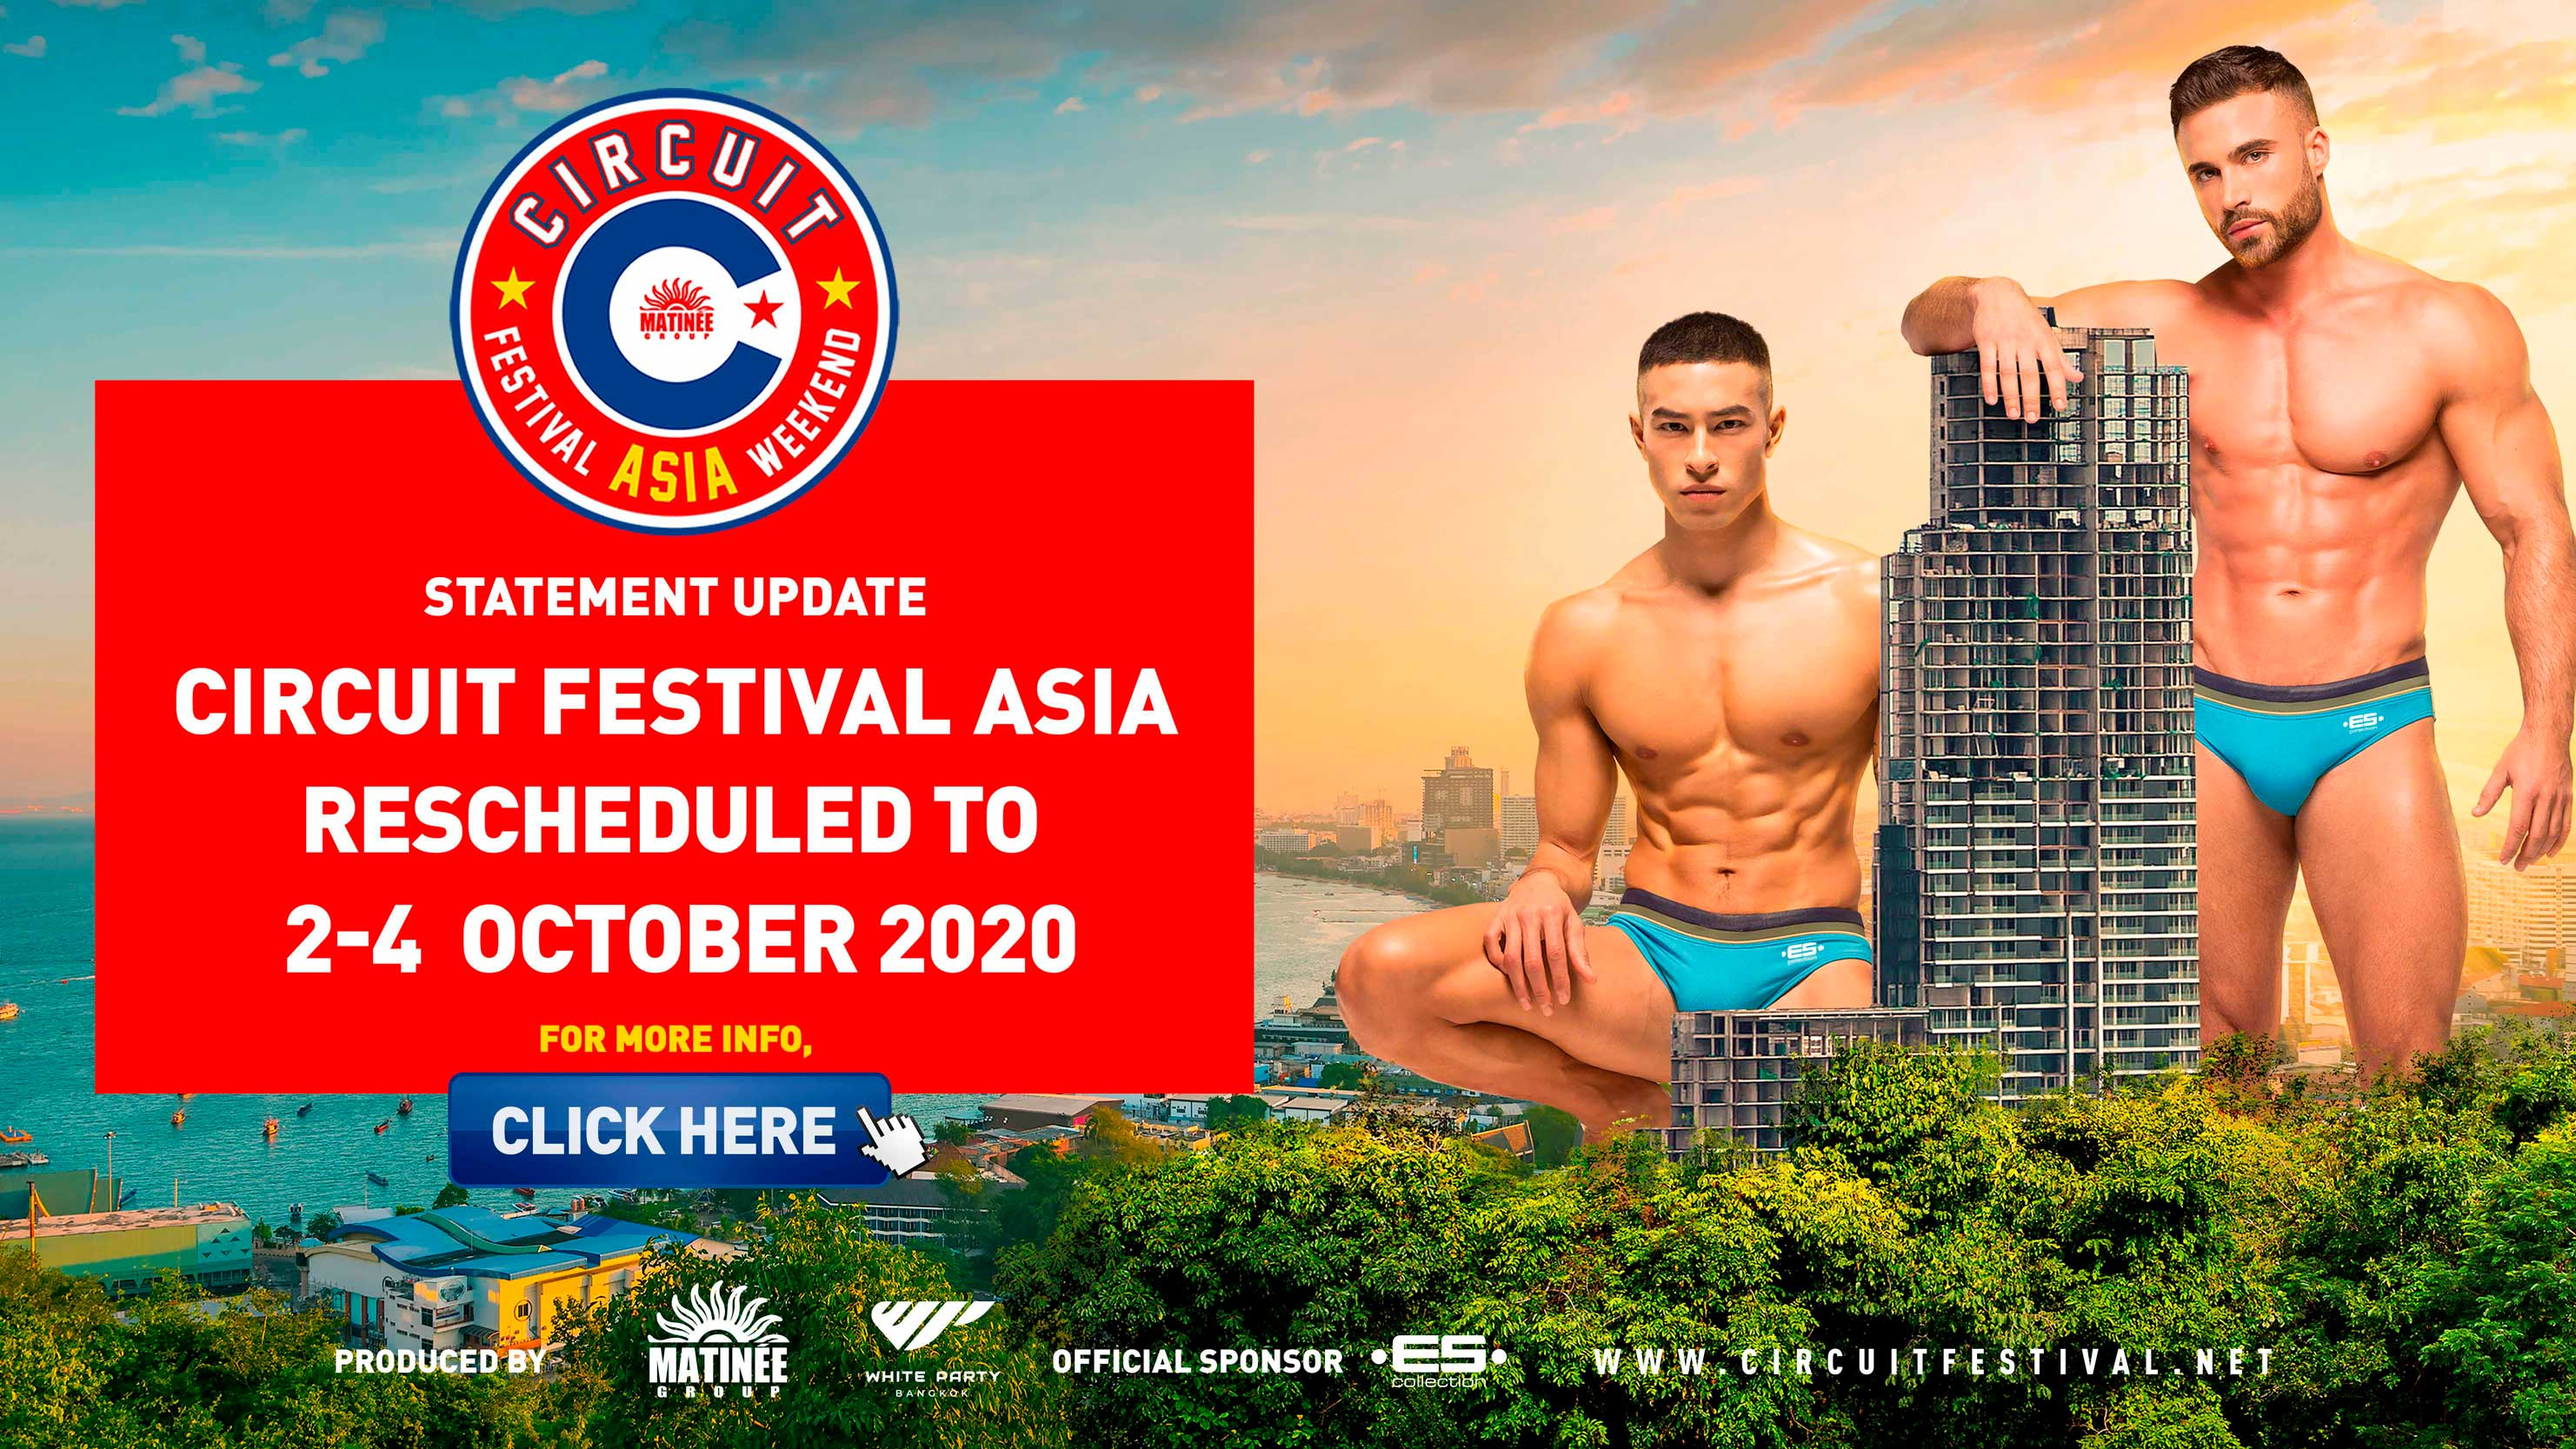 circuitfestival_asia_web_gayfestival_gayparty_asia_circuit_festival_event_gay_party